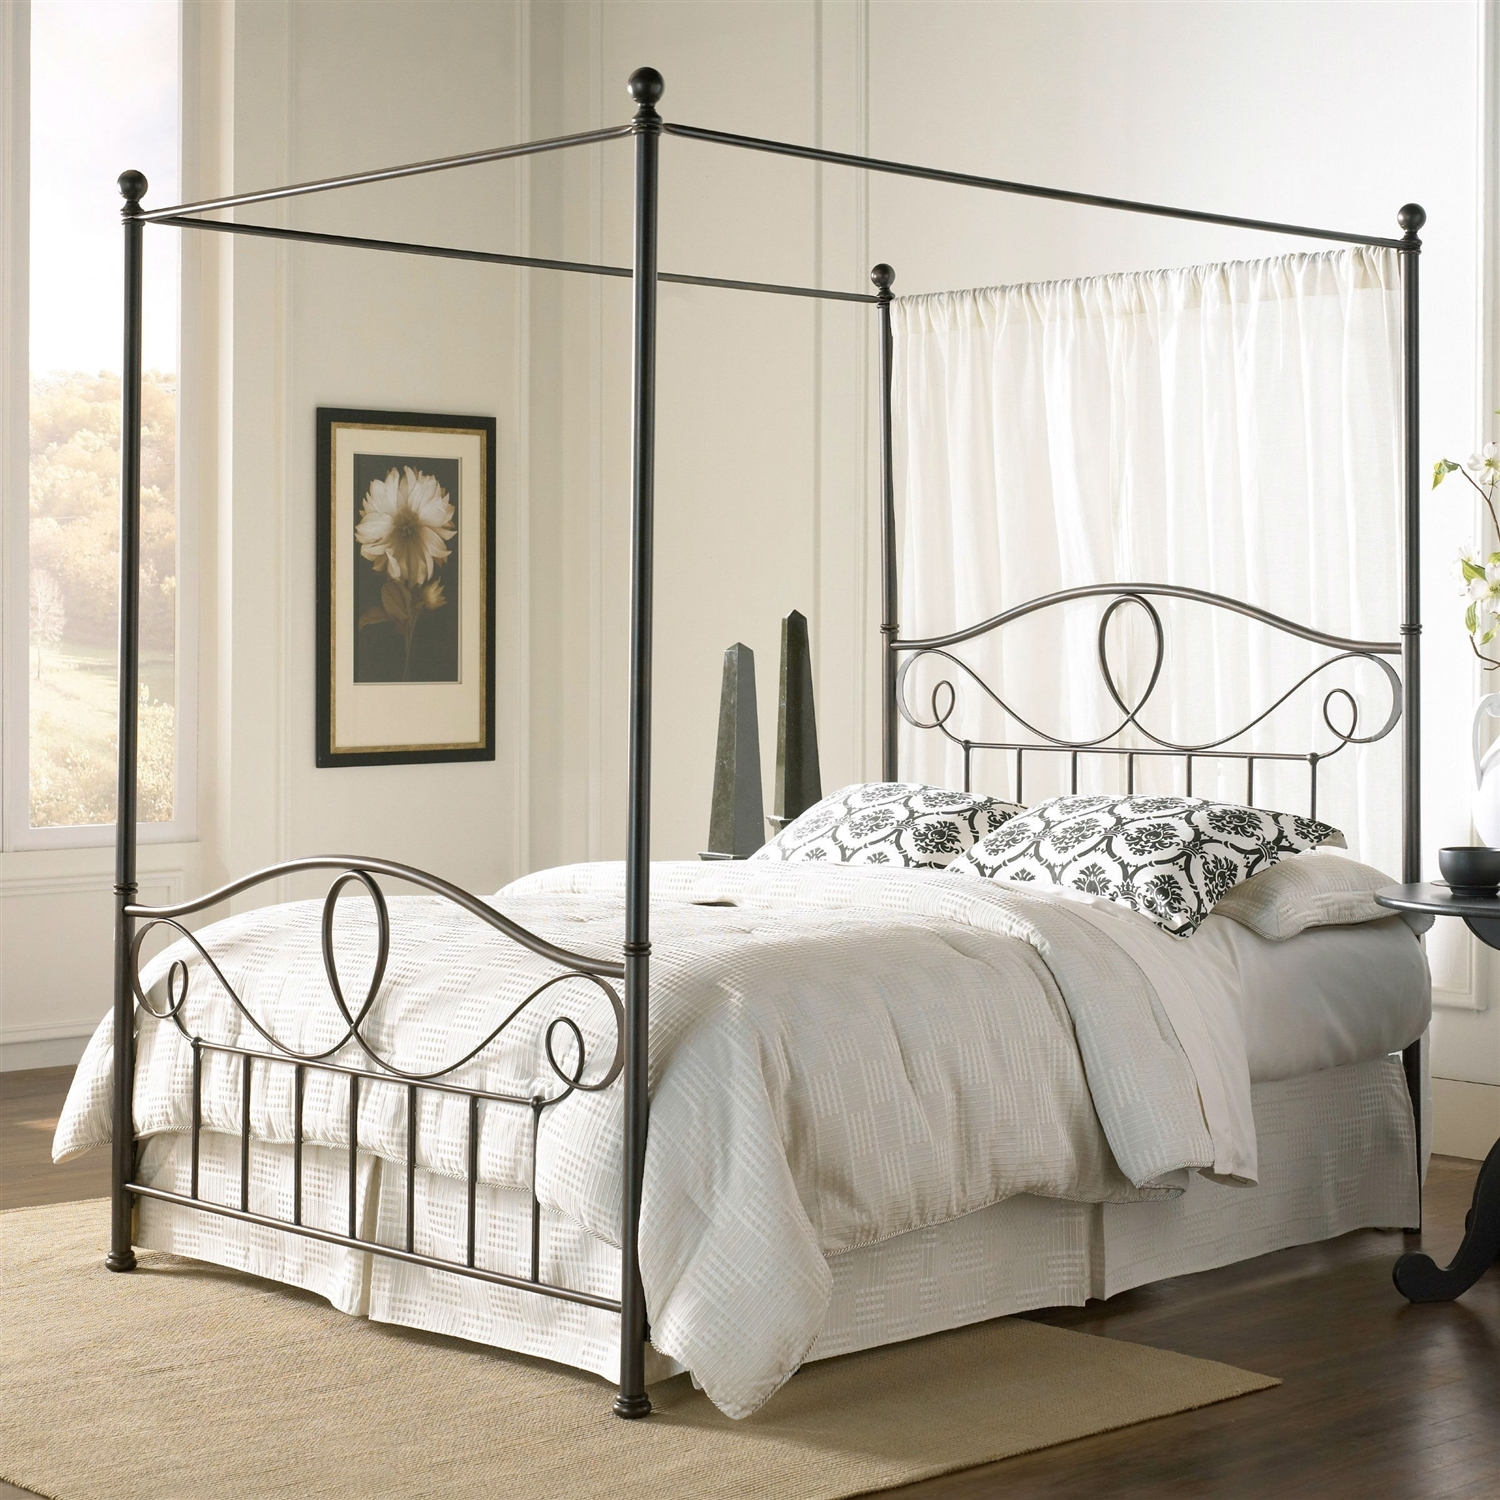 664c58144ecbd Full size Complete Metal Canopy Bed with Scroll-work and Ball Finials